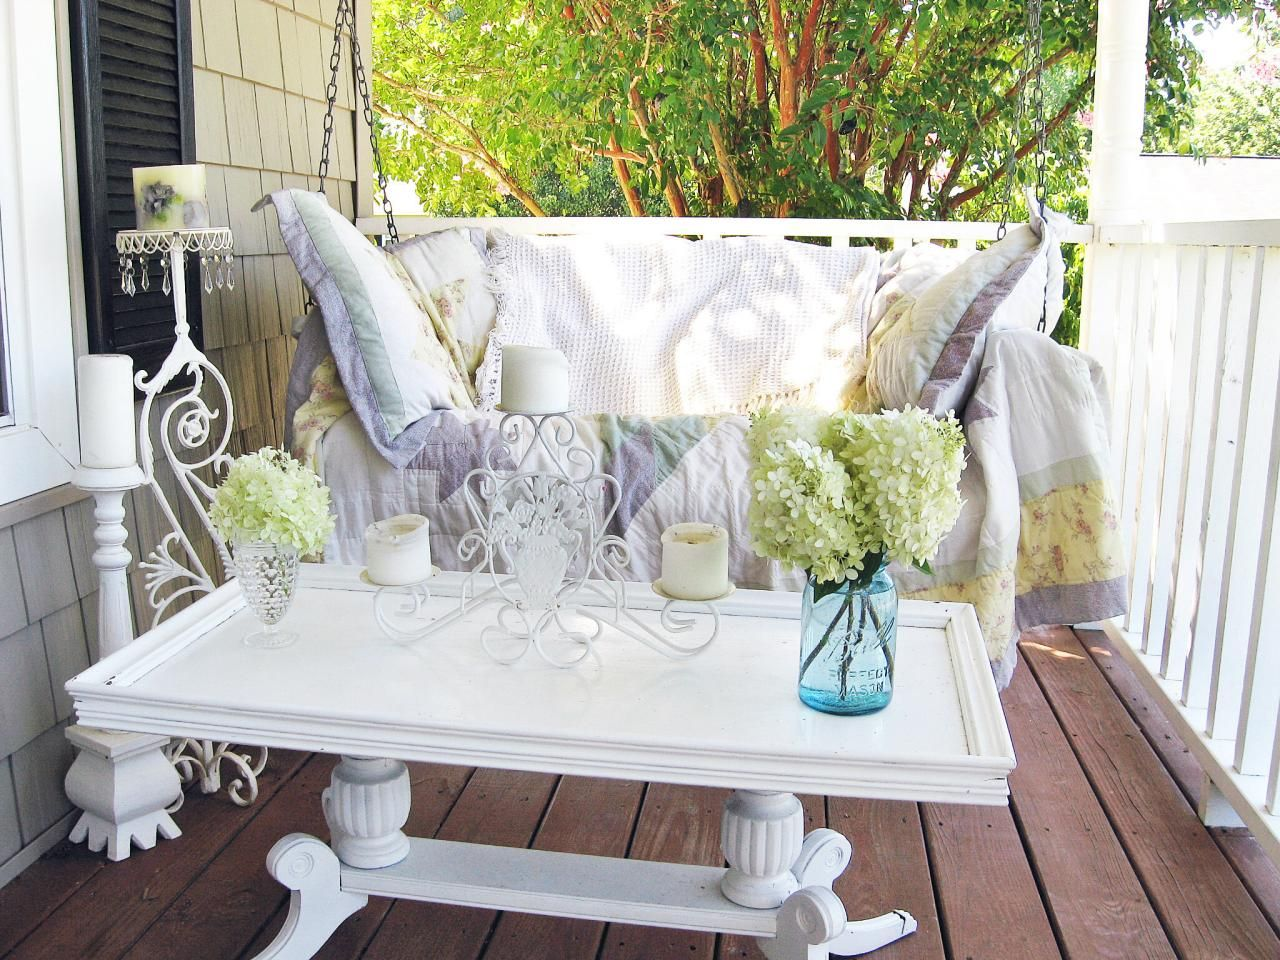 Shabby chic decorating ideas for porches and gardens for Decorating small patio spaces